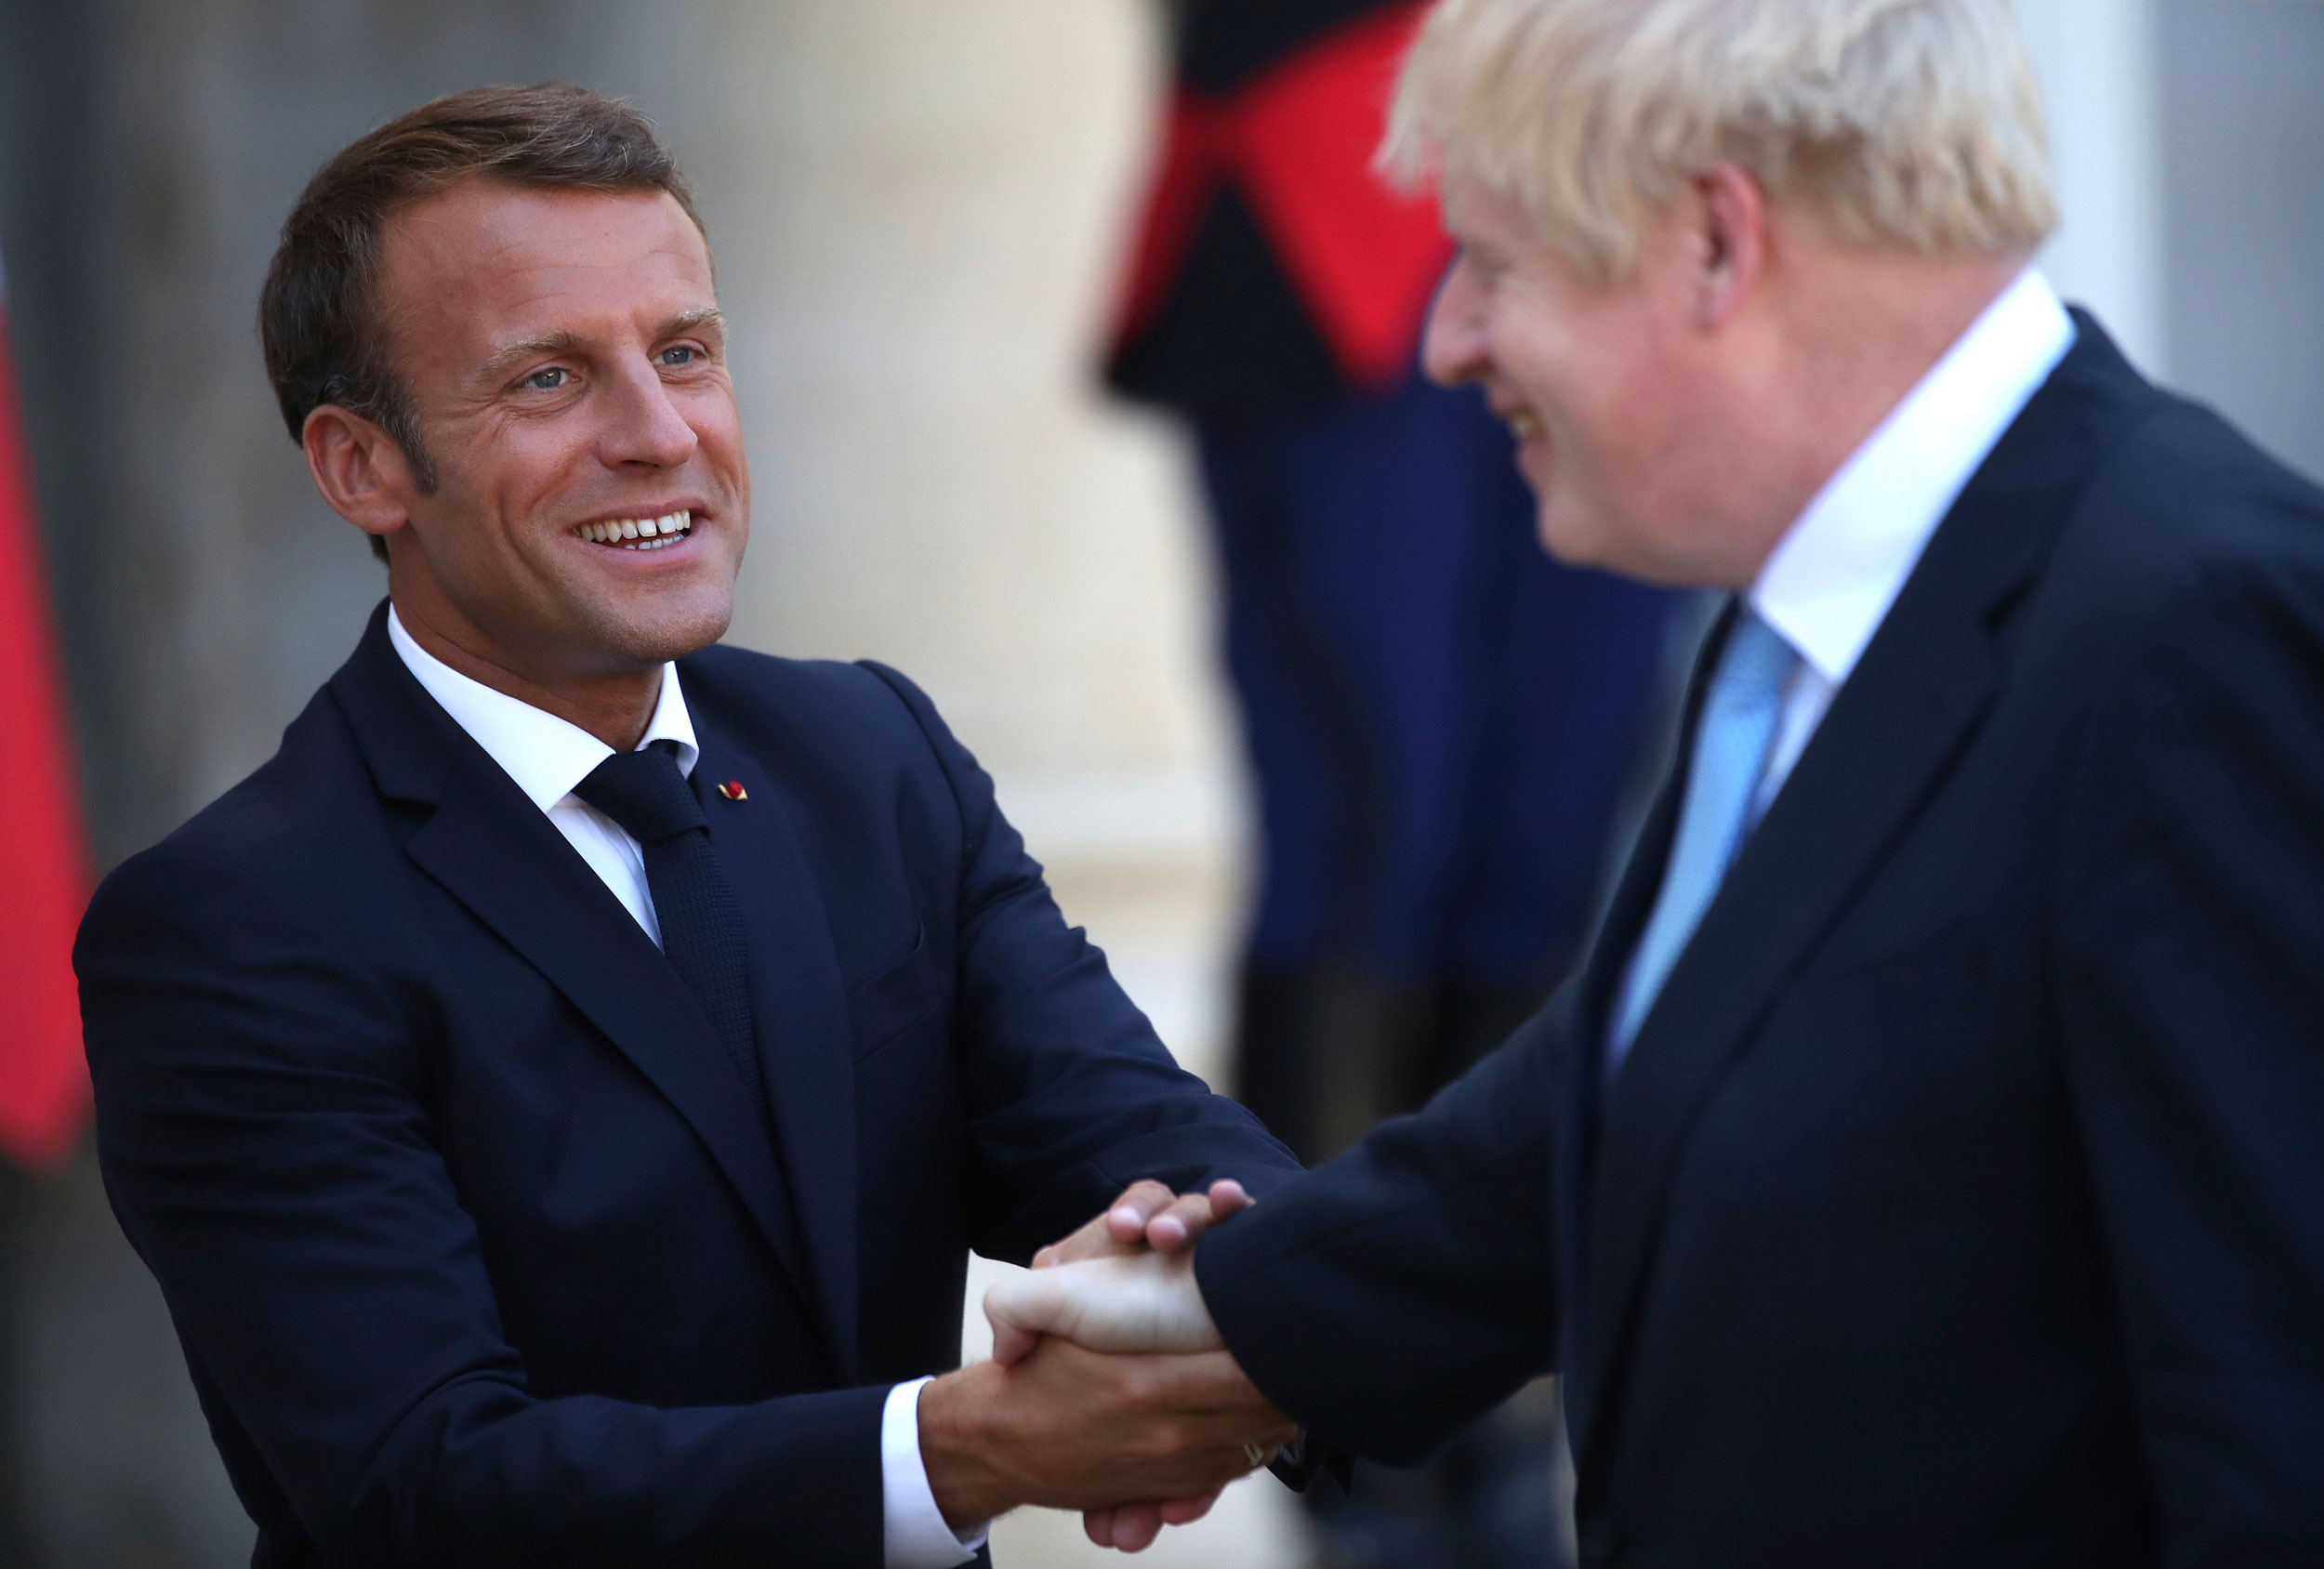 French President Emmanuel Macron bids farewell to Britain's Prime Minister Boris Johnson at the Elysee Palace in Paris on August 22, 2019.